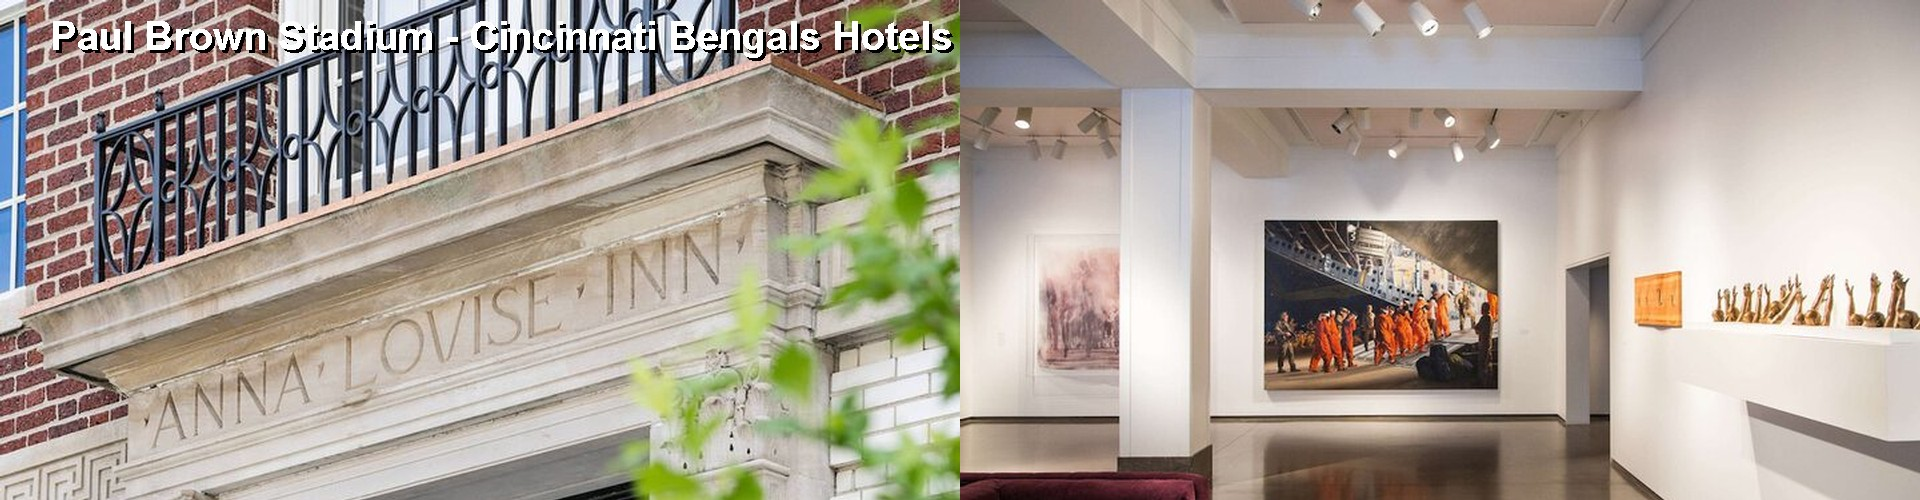 $53+ Hotels Near Paul Brown Stadium Cincinnati Bengals in